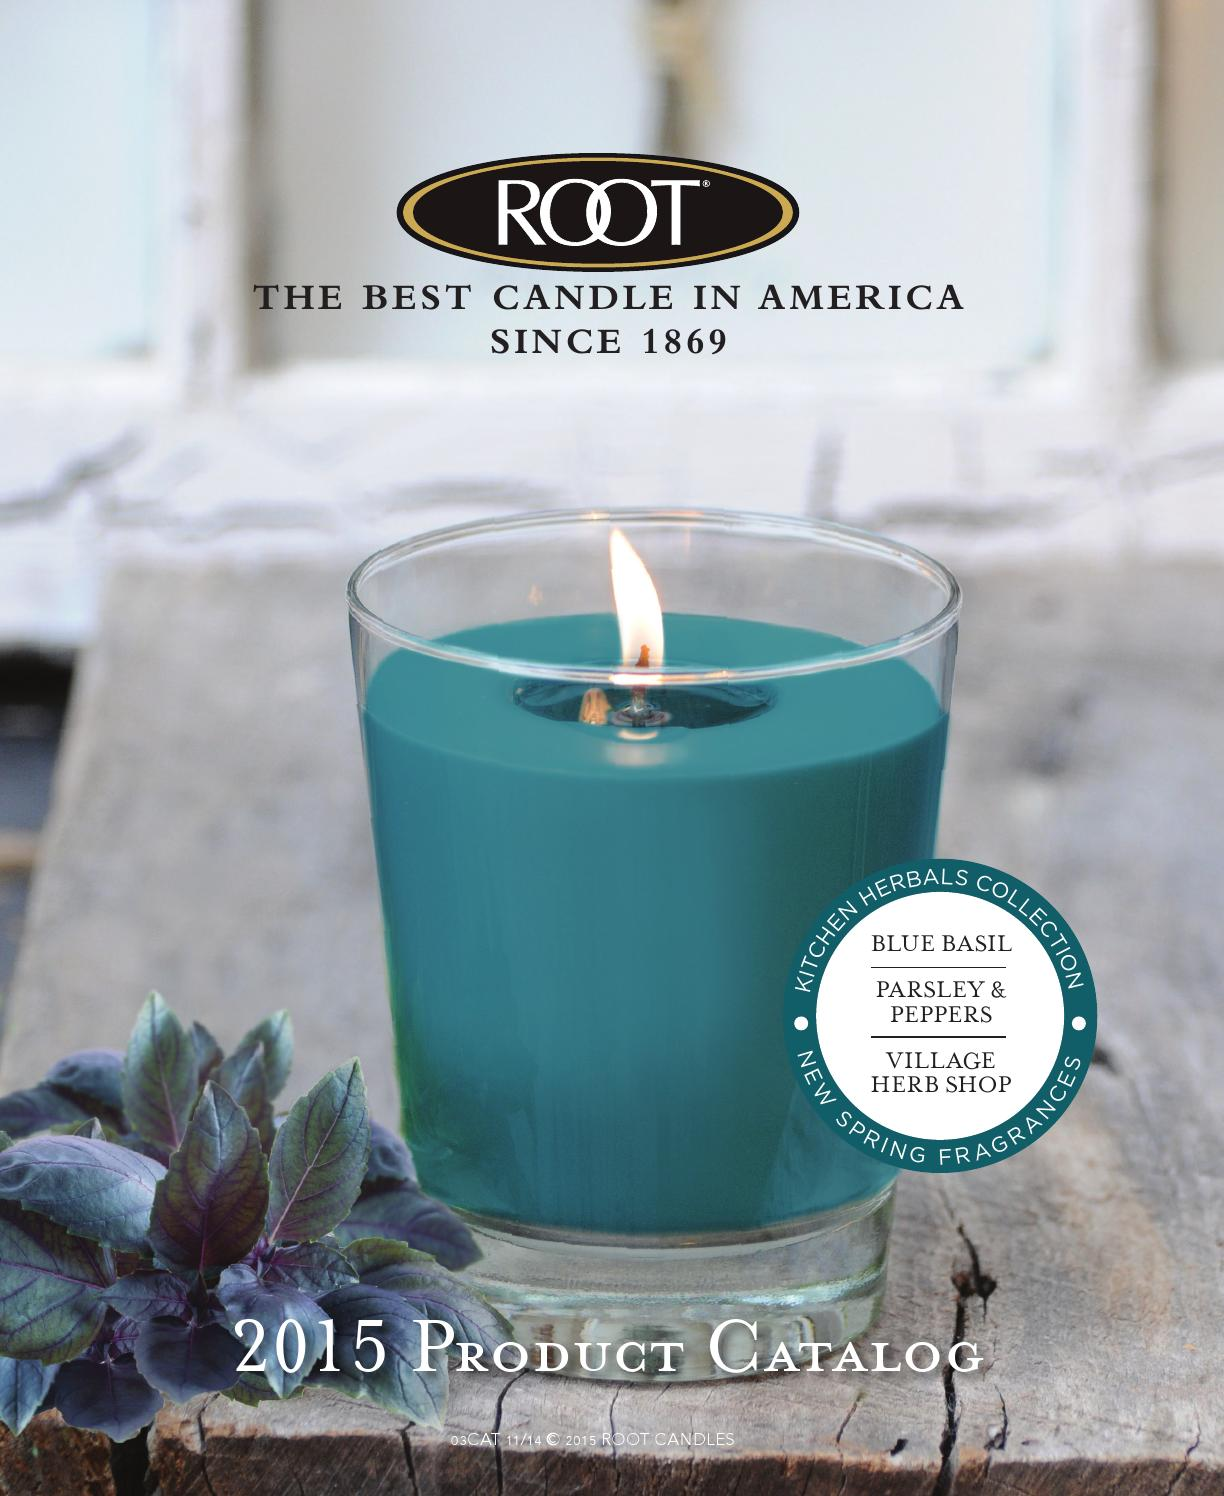 Root Candles Large Queen Bee 22 oz Paradise Creamy White